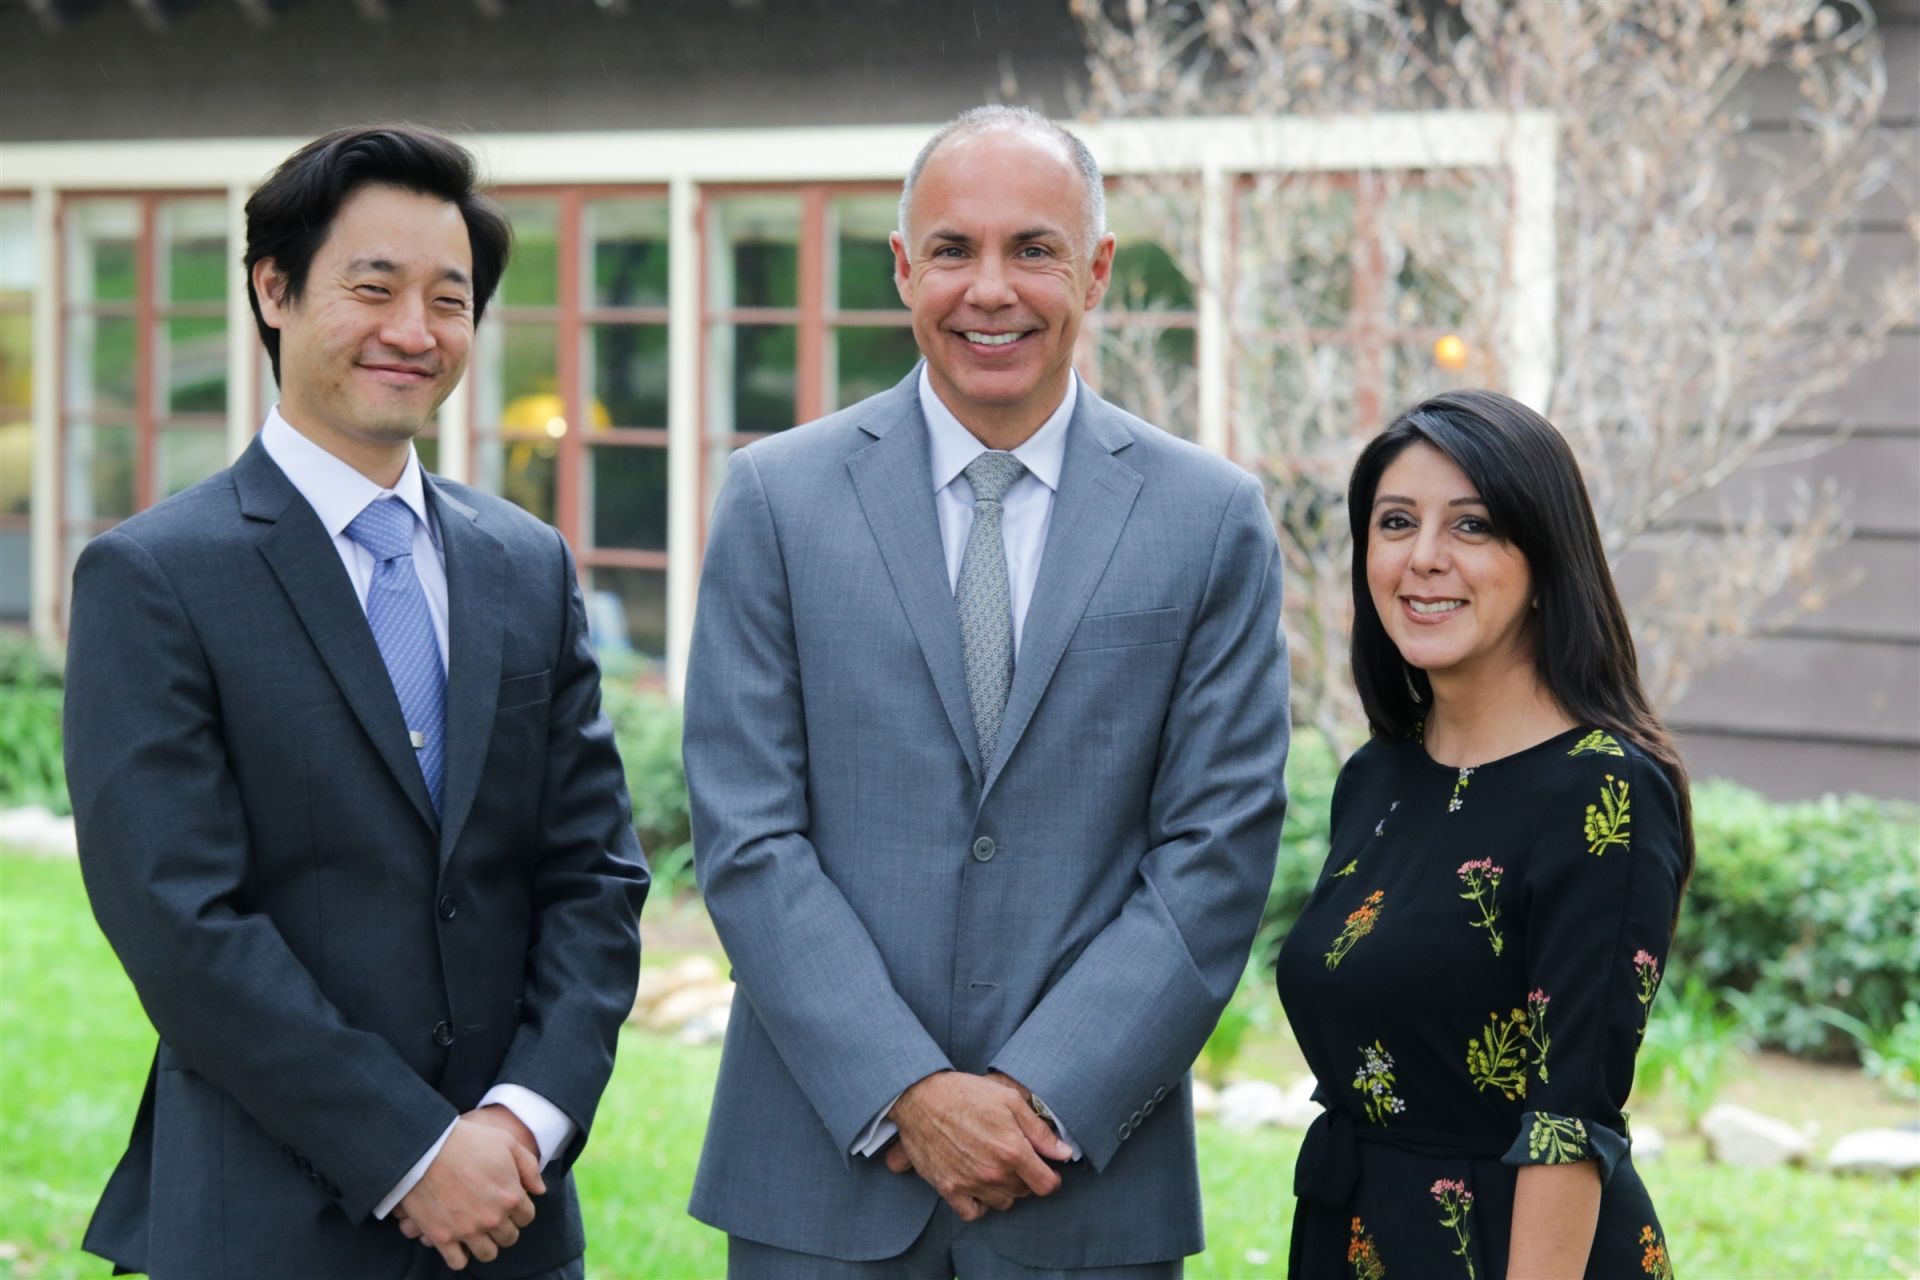 (l-r): Anthony Shin '99, Hector Martinez, Adriana Flores